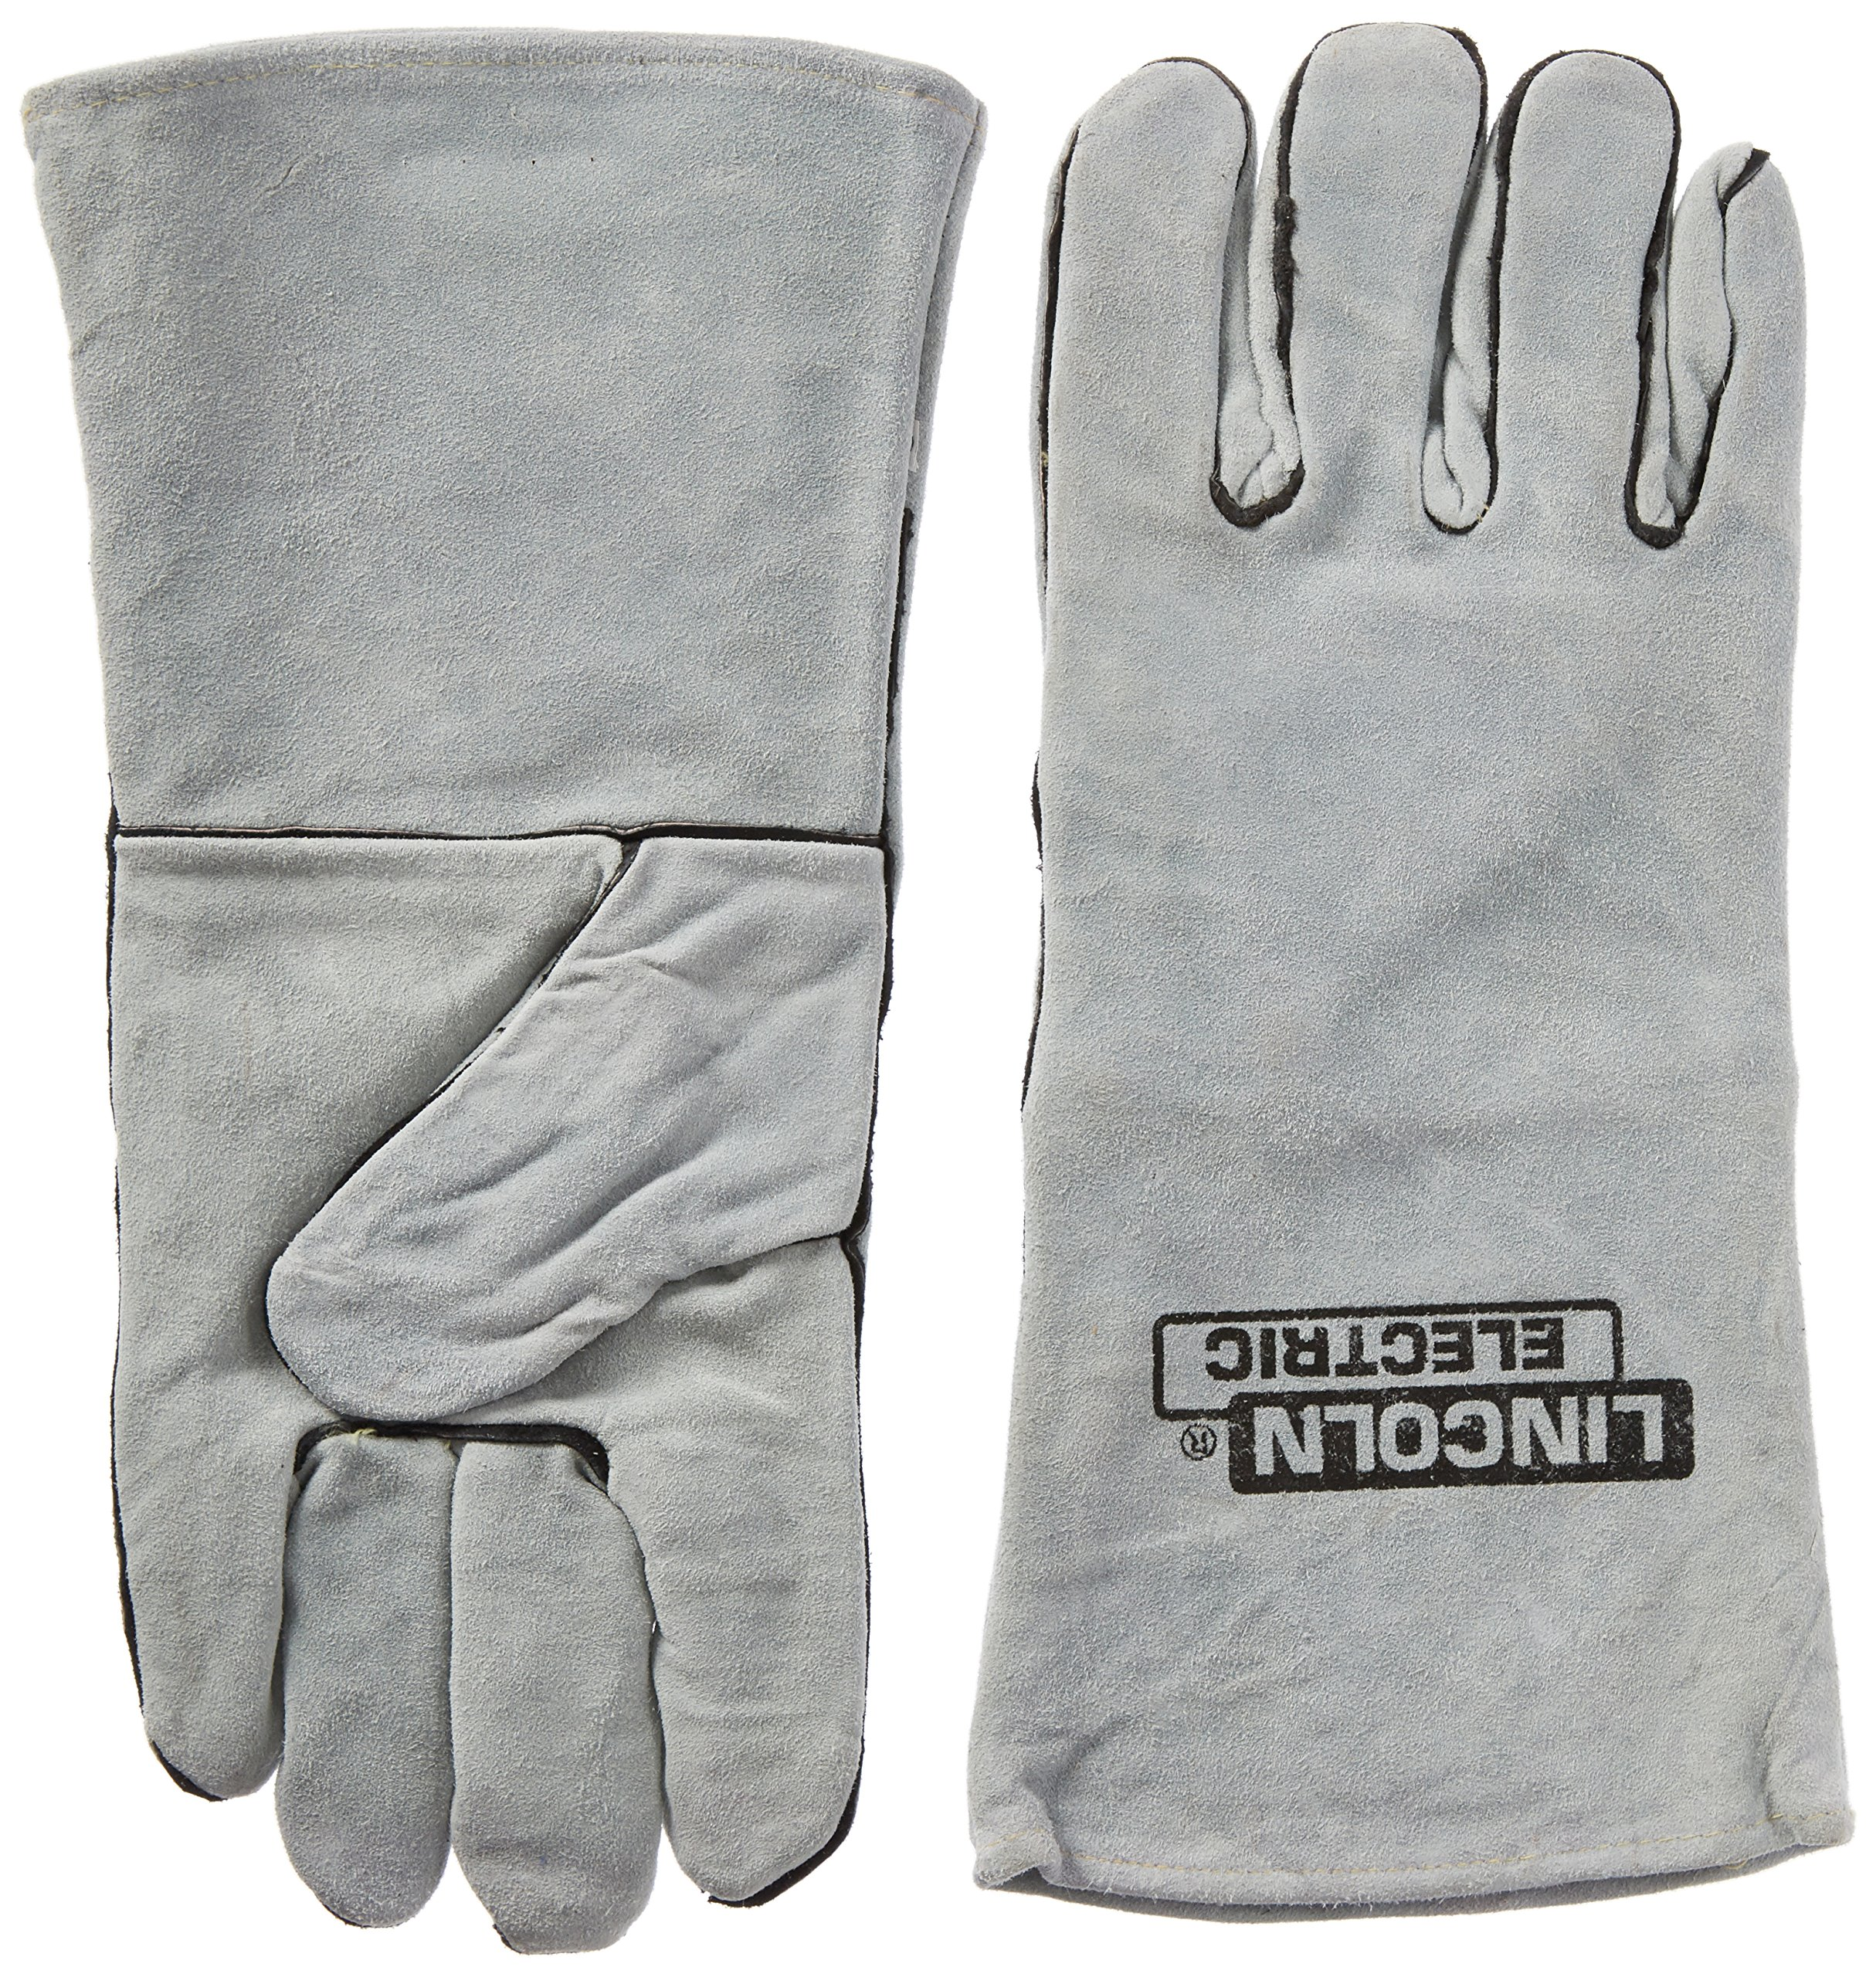 Lincoln Electric KH641 Leather Welding Gloves, One Size, Grey by Lincoln Electric (Image #1)